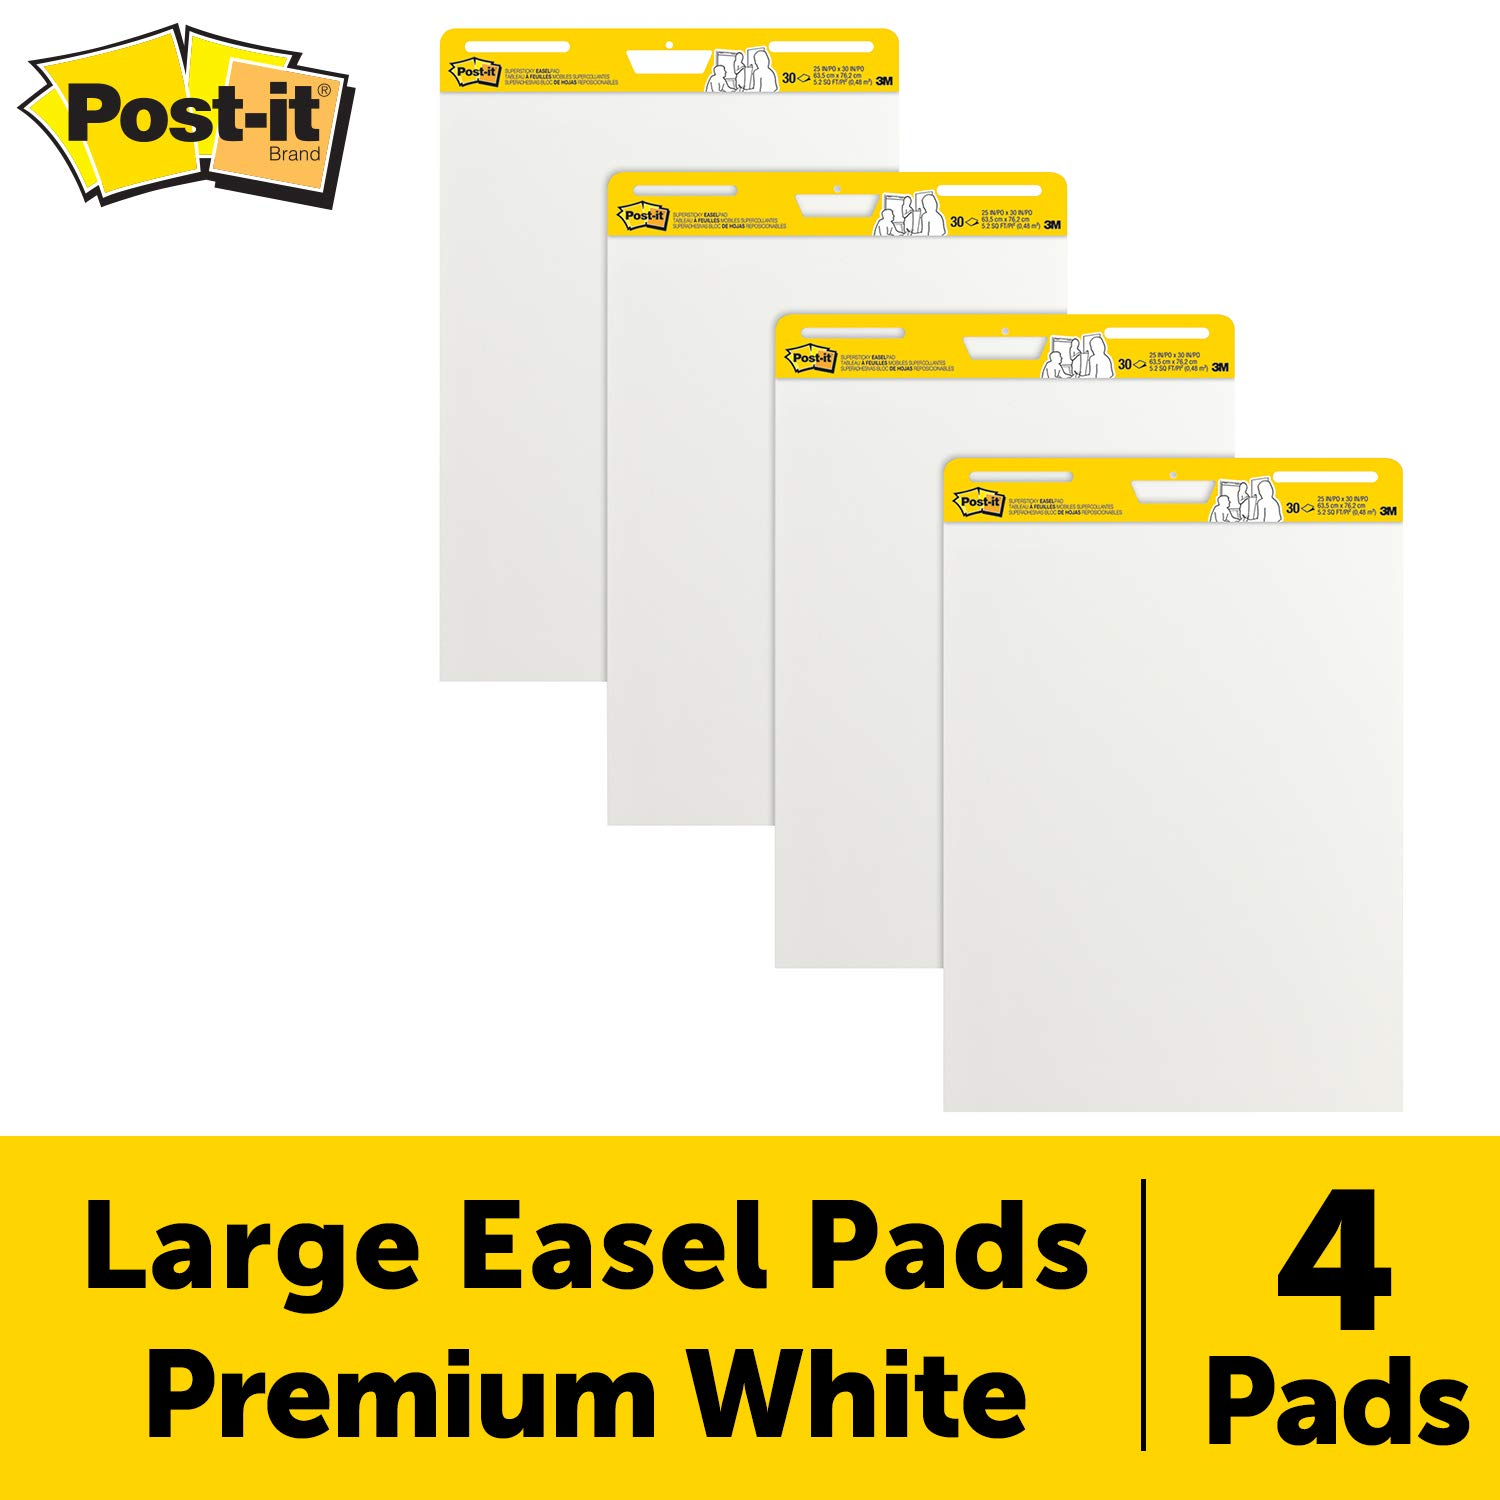 Post-It Super Sticky Easel Pad, 25 x 30 Inches, 30 Sheets/Pad, 4 Pads, Large White Premium Self Stick Flip Chart Paper, Super Sticking Power (559-4) by Post-it